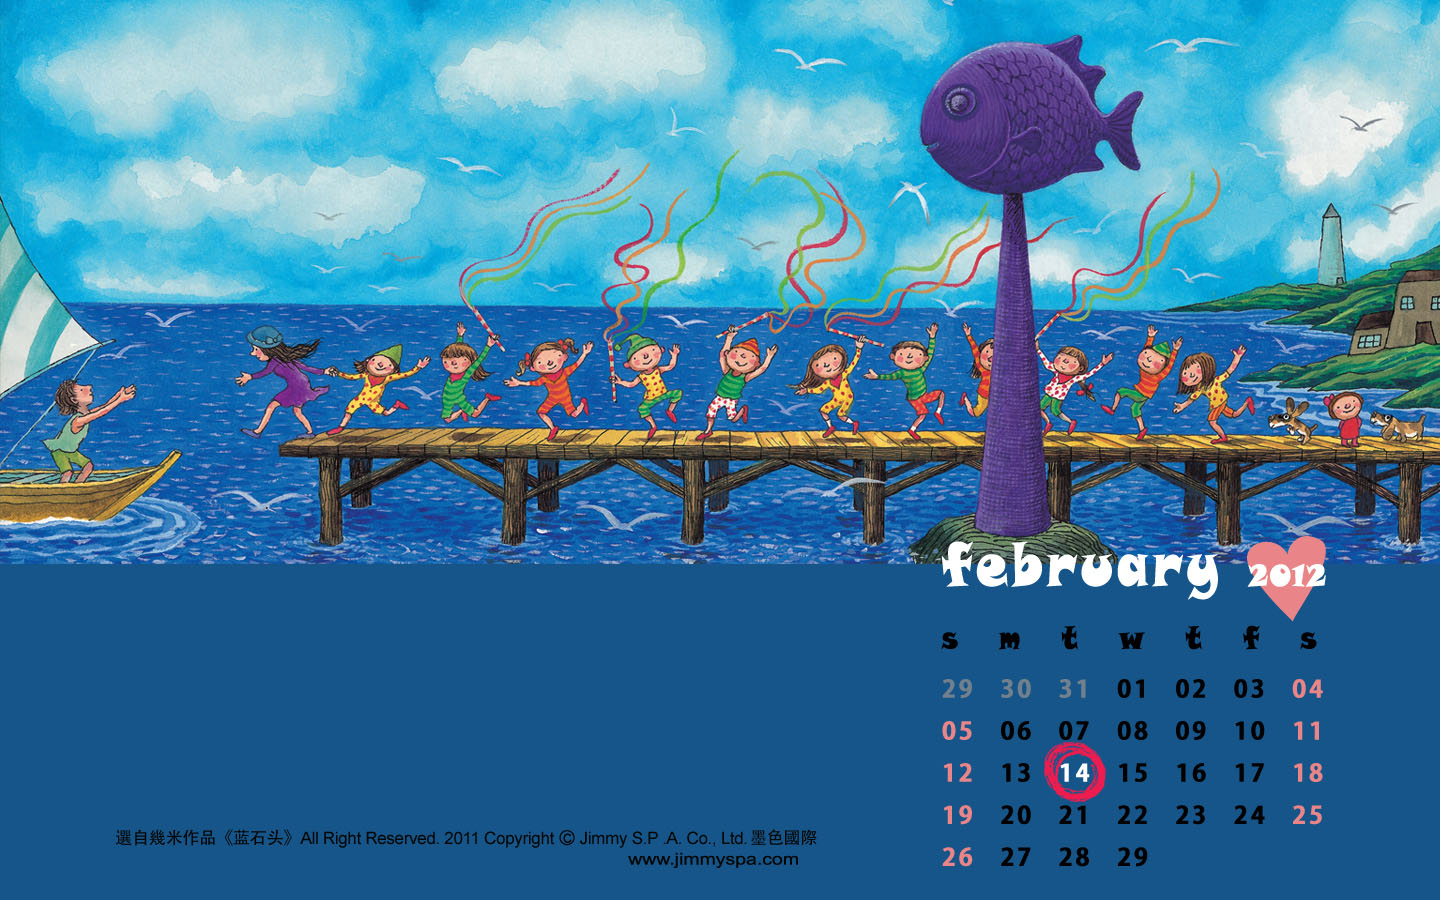 In January Calendar Wallpaper 31365